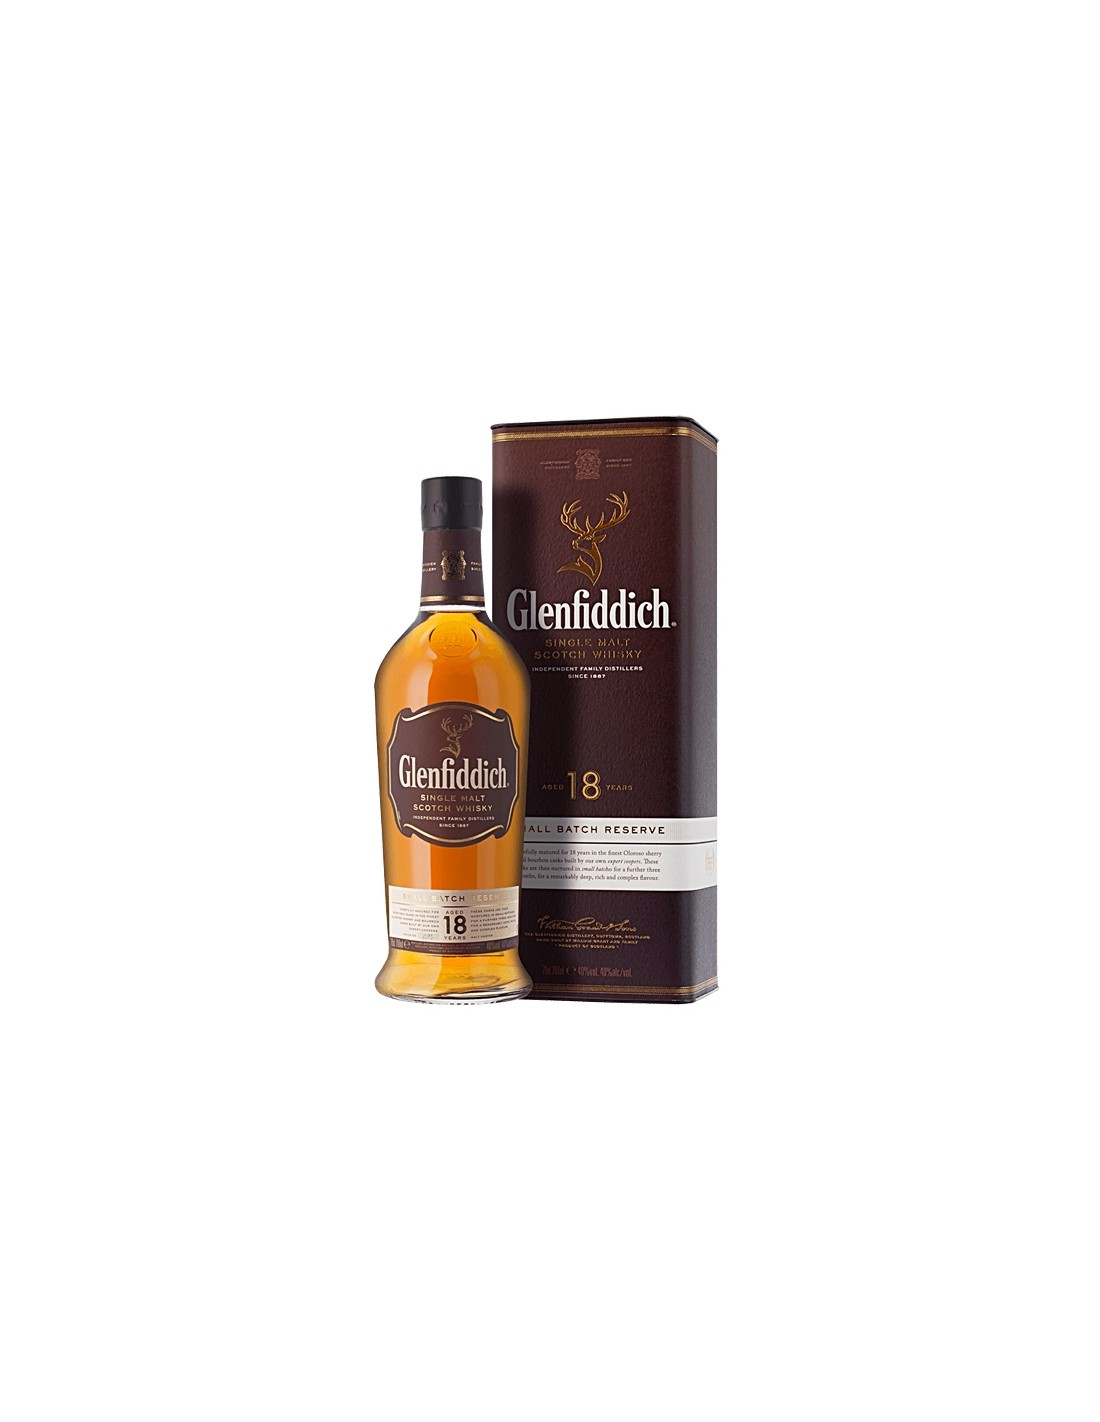 Whisky Single Malt Glenfiddich, 18 ani, 40% alc., 0.7L, Scotia